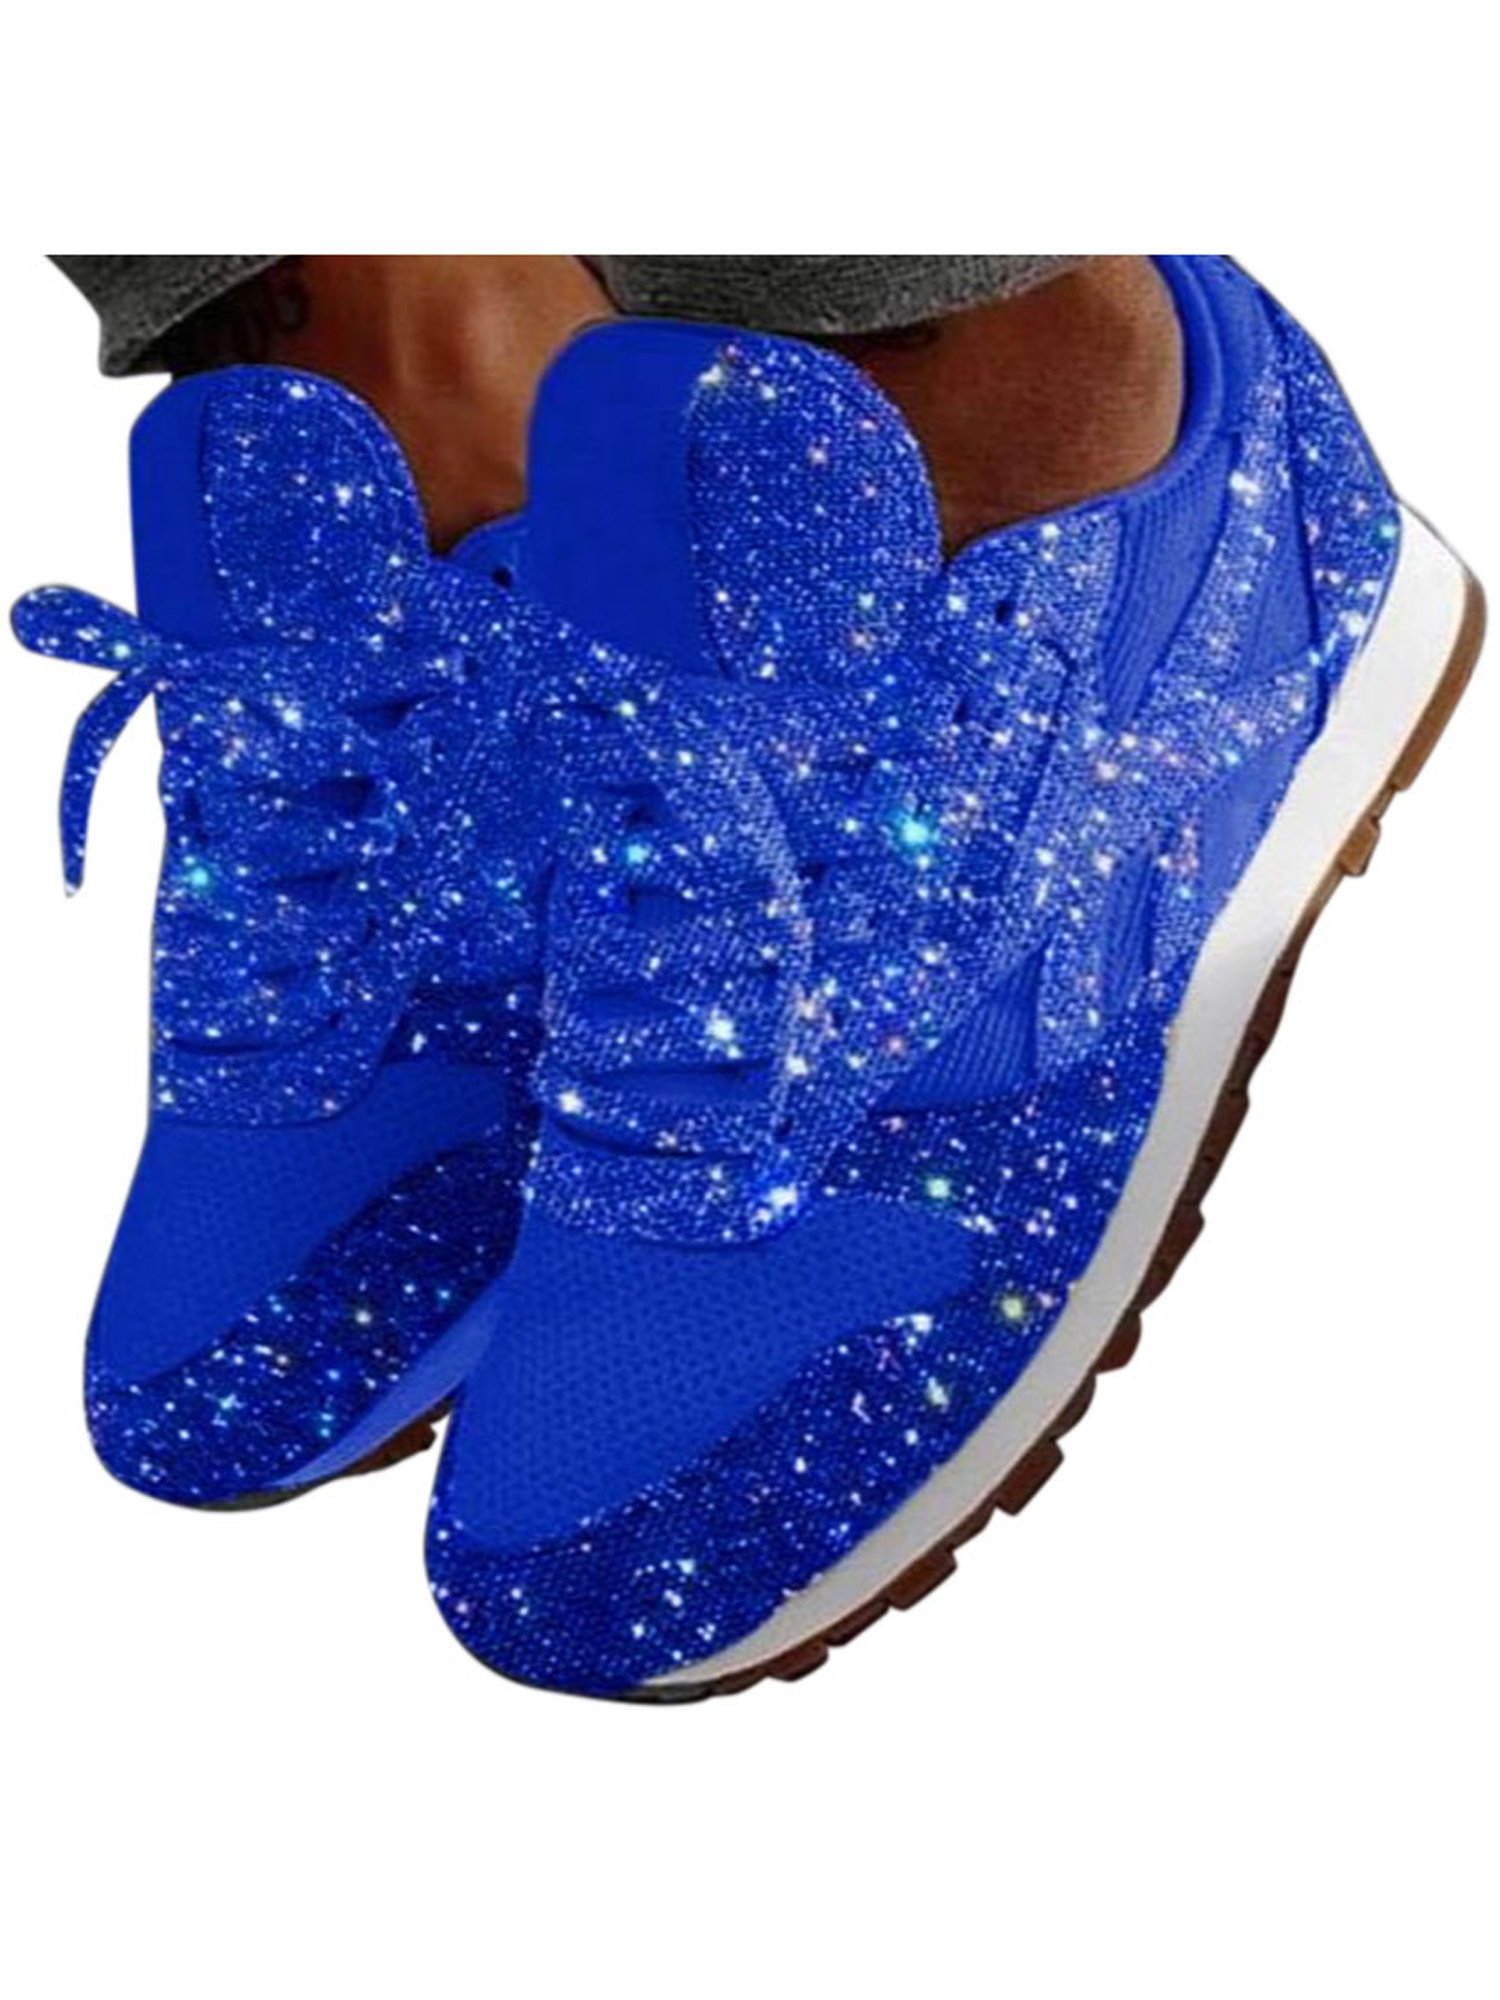 Kids Girl/'s Sequin Sneaker Athletic Tennis Shoes Lace-Up Casual Walking Running